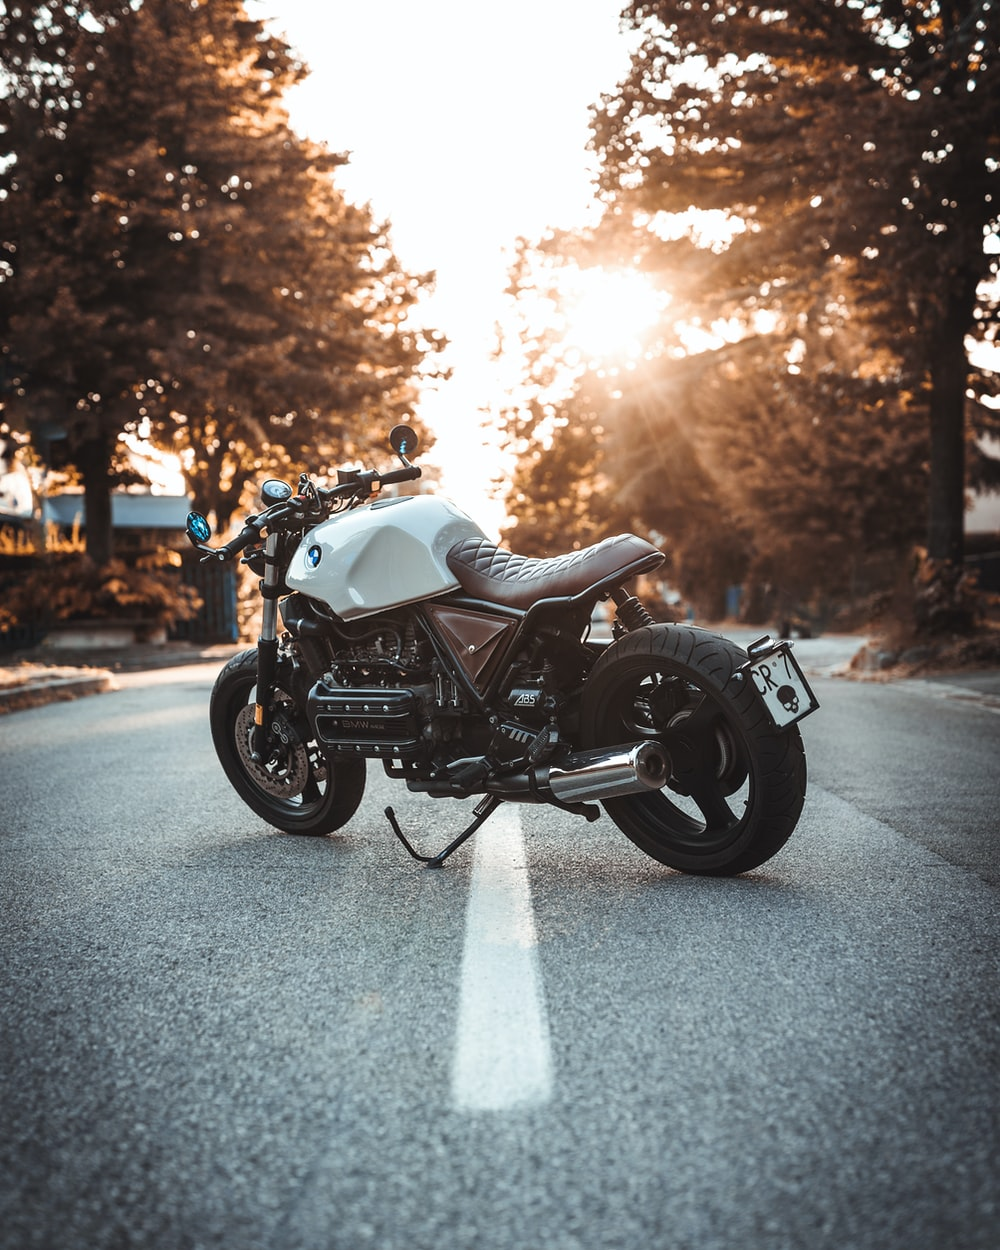 750 Motorbike Pictures Download Free Images Stock Photos On Unsplash